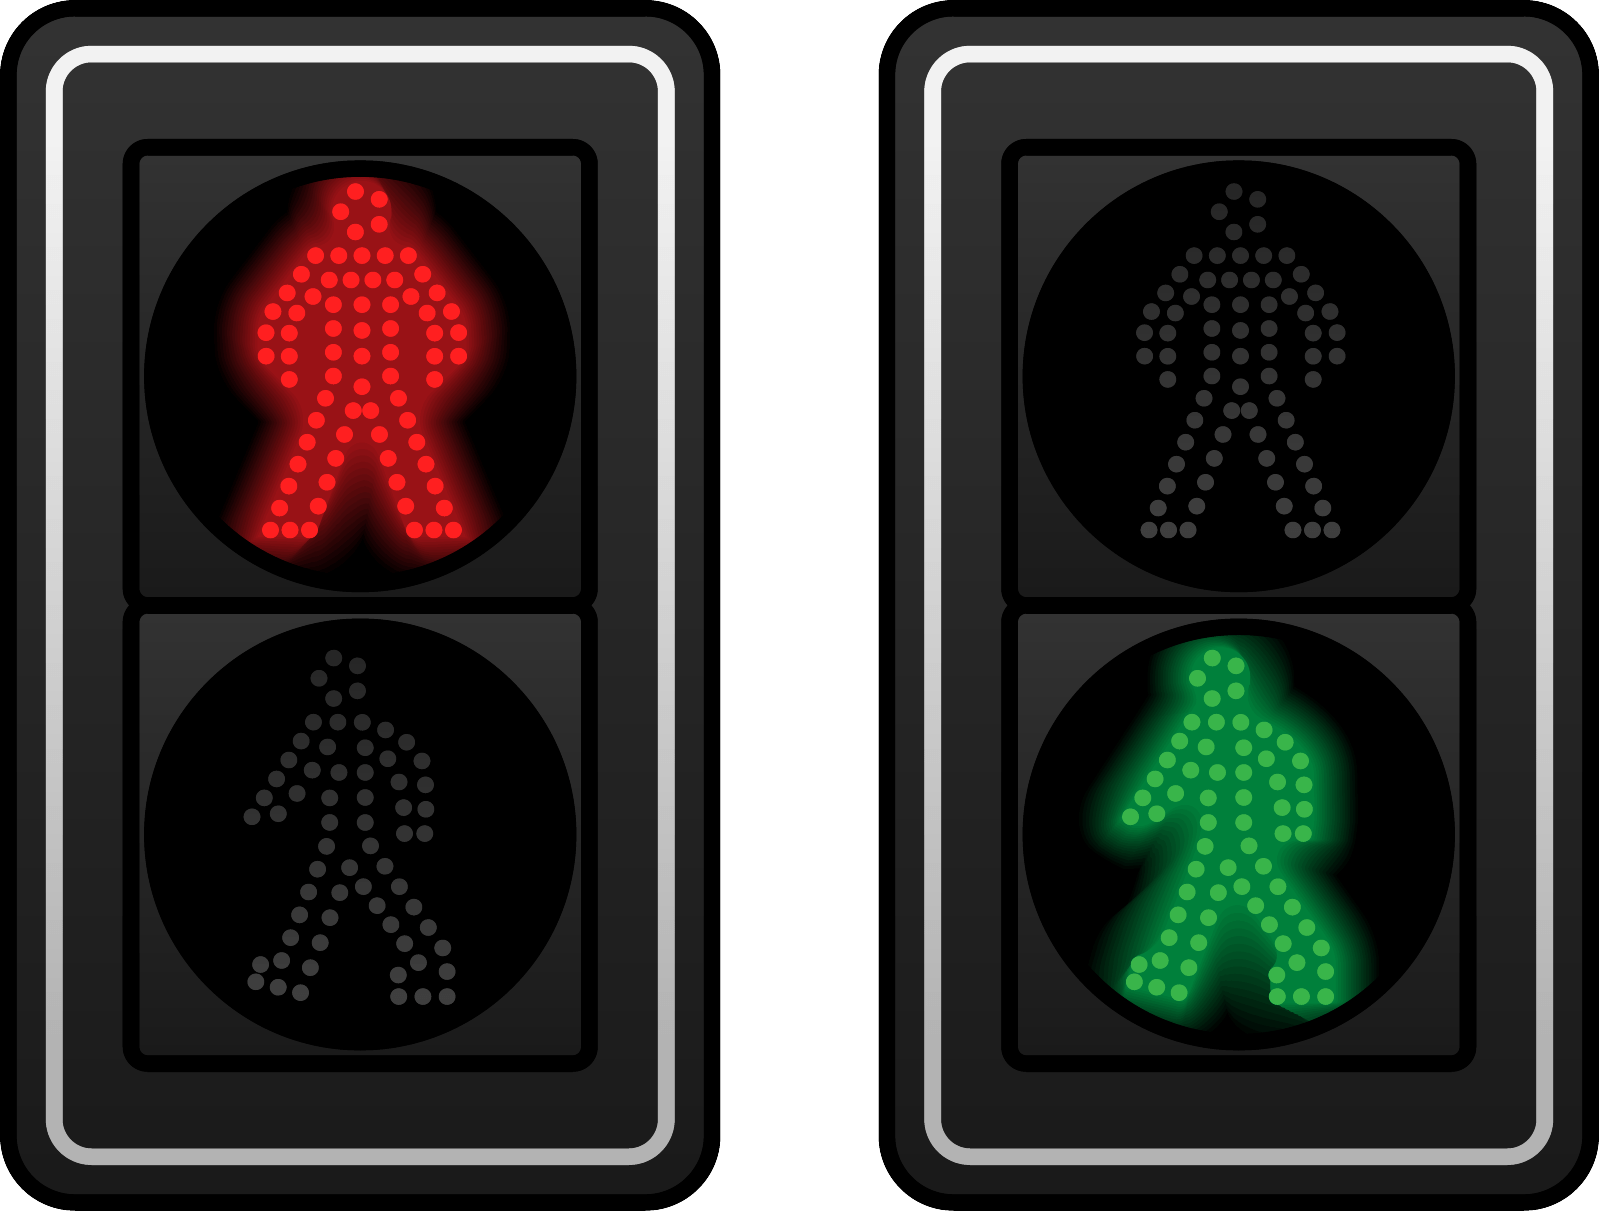 How Much Time Does The Green Man On The Traffic Light